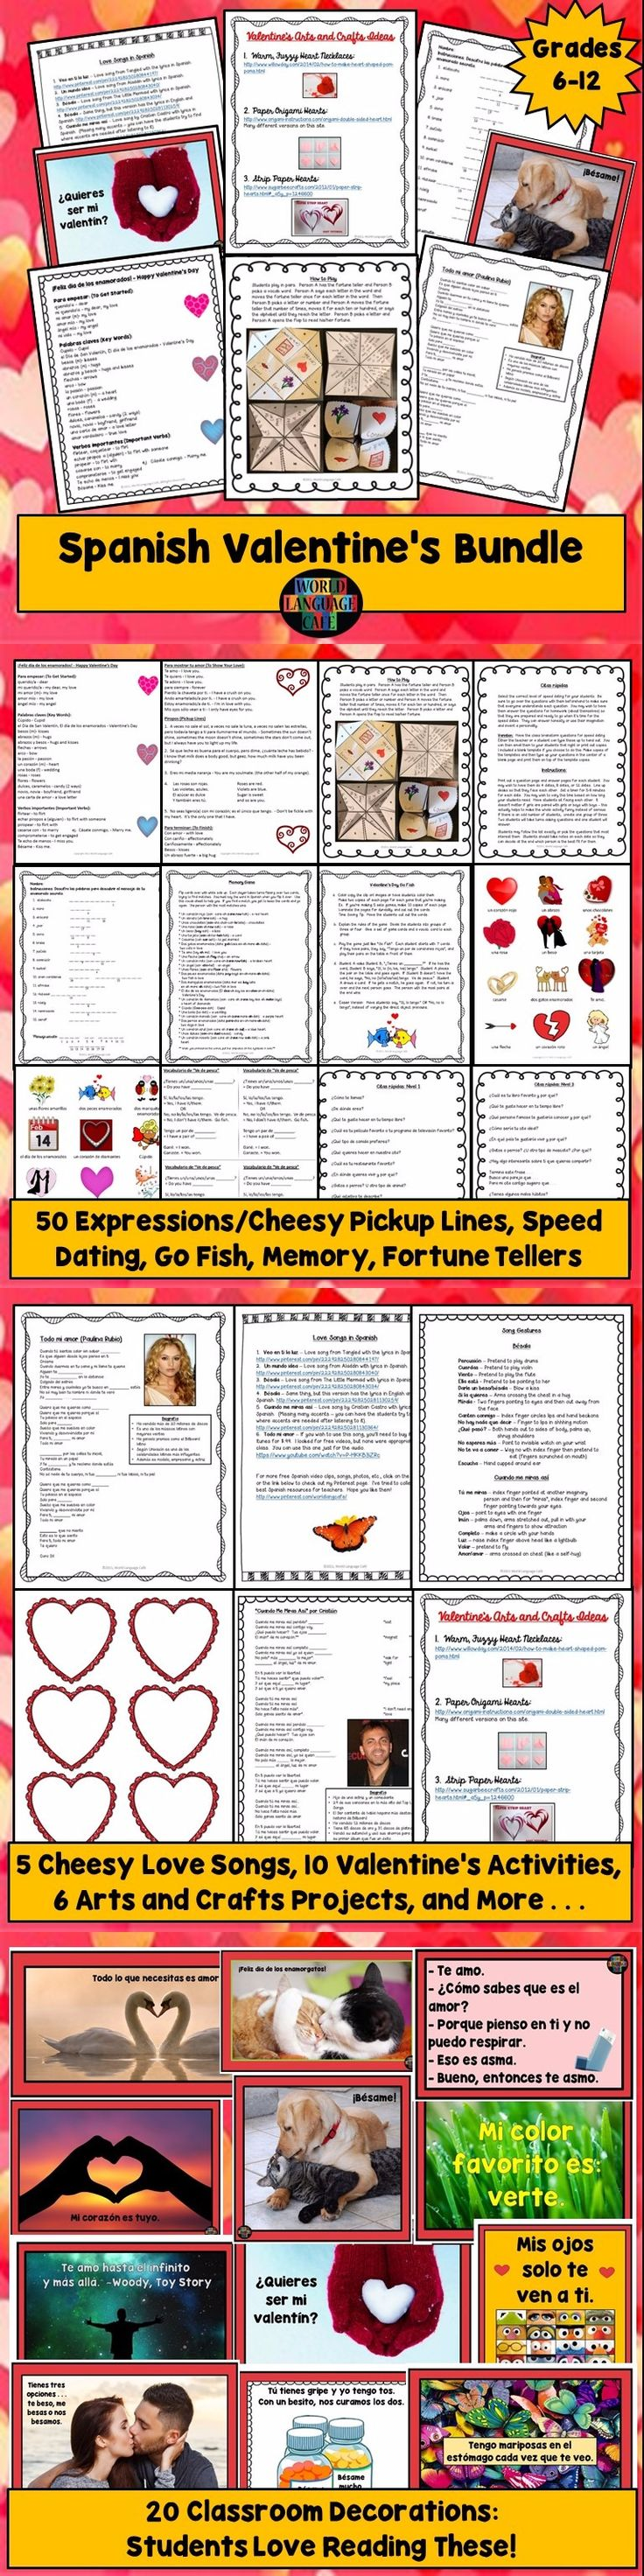 Tired of mopey kids on Spanish Valentine's Day, Día de los enamorados? Here's a way to guarantee that every student will feel the love (at least in Spanish class). This growing bundle includes games, songs, classroom signs, crafts, speed dating, fortune tellers, memes, and more for all levels of students from elementary to high school.